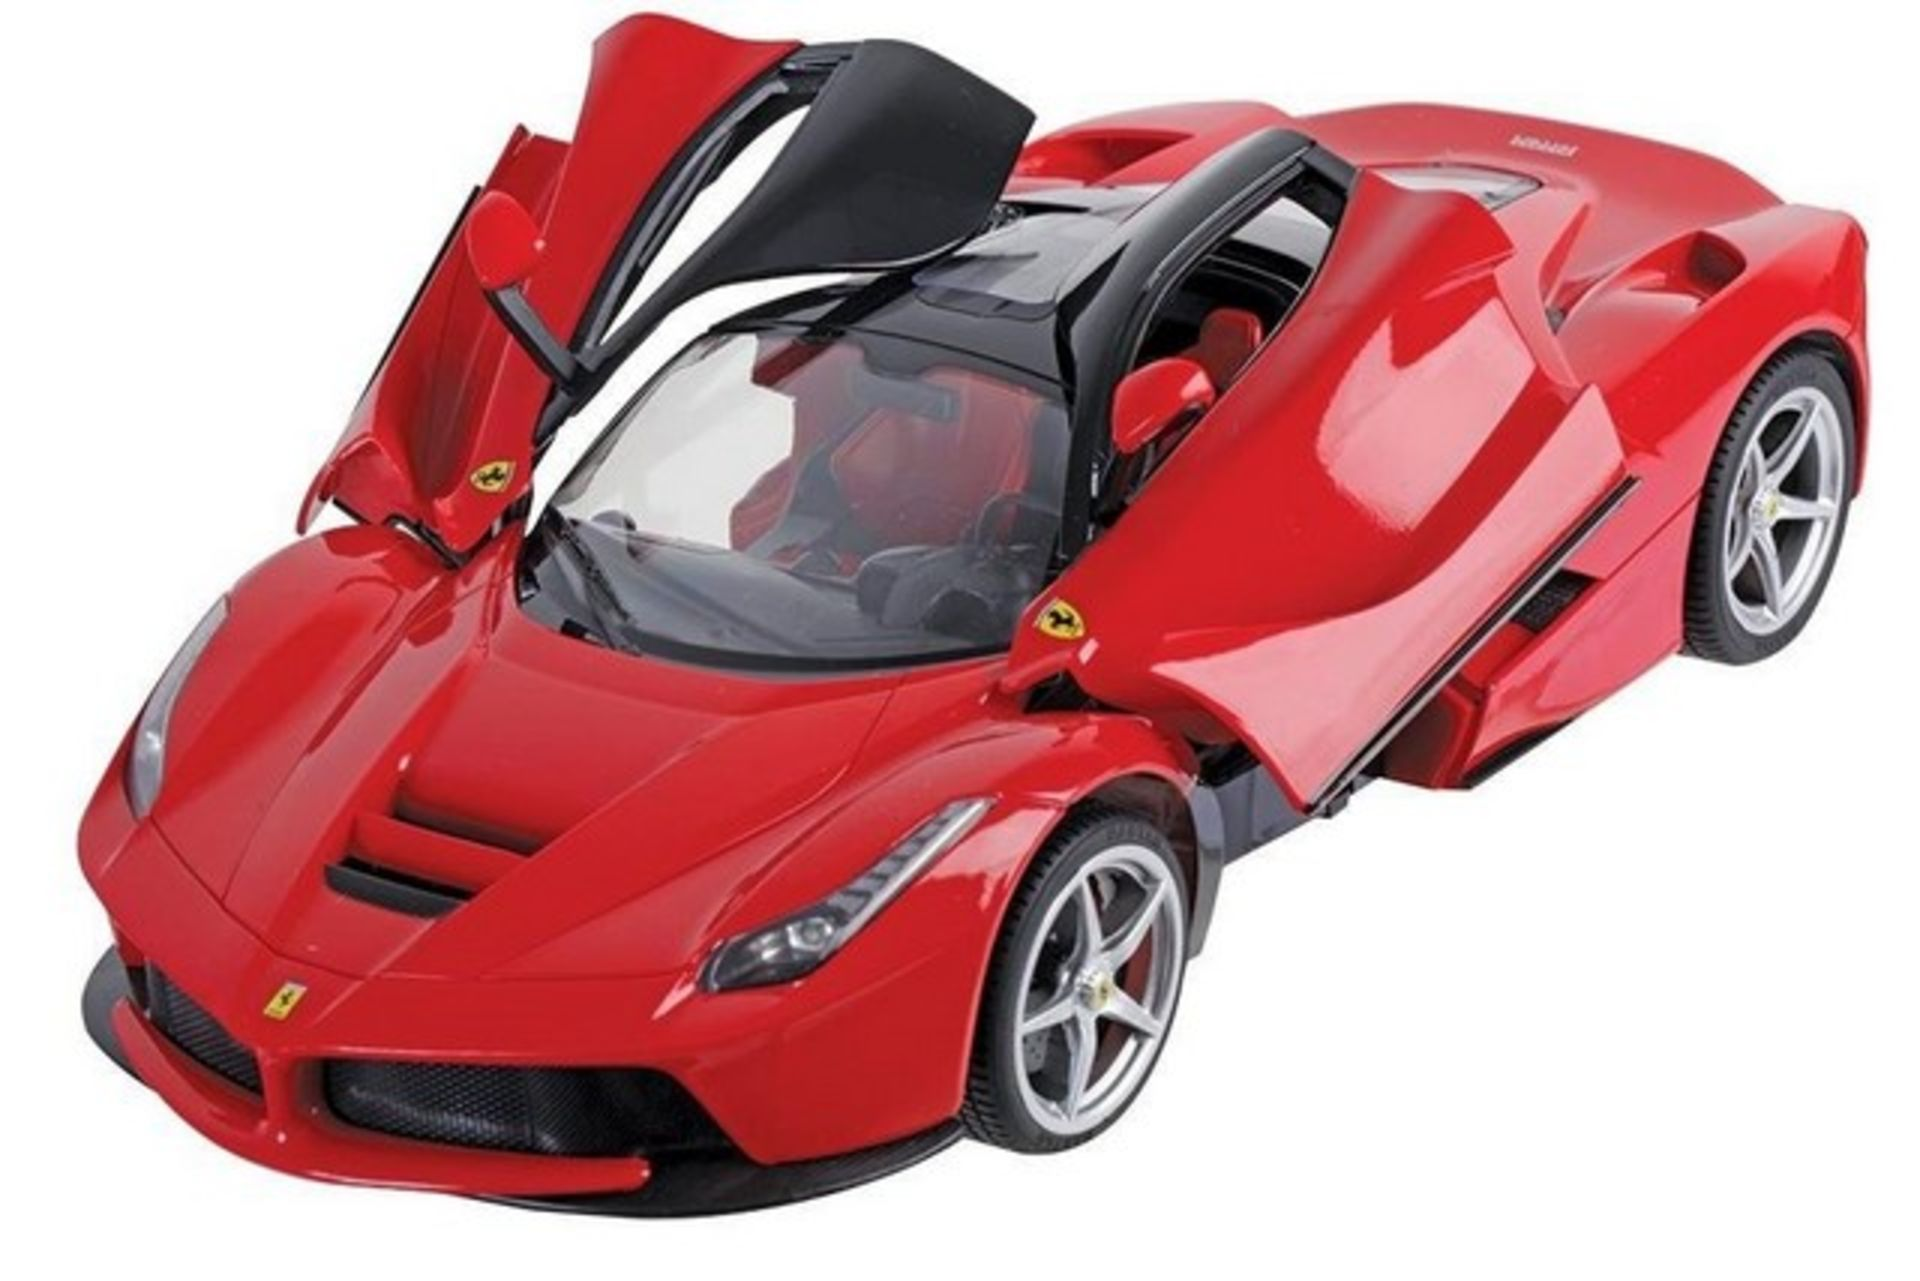 Lot 11678 - V Brand New R/C 1:14 Scale Ferrari La Ferrari Official Merchandise With Forward/Reverse - Left/Right